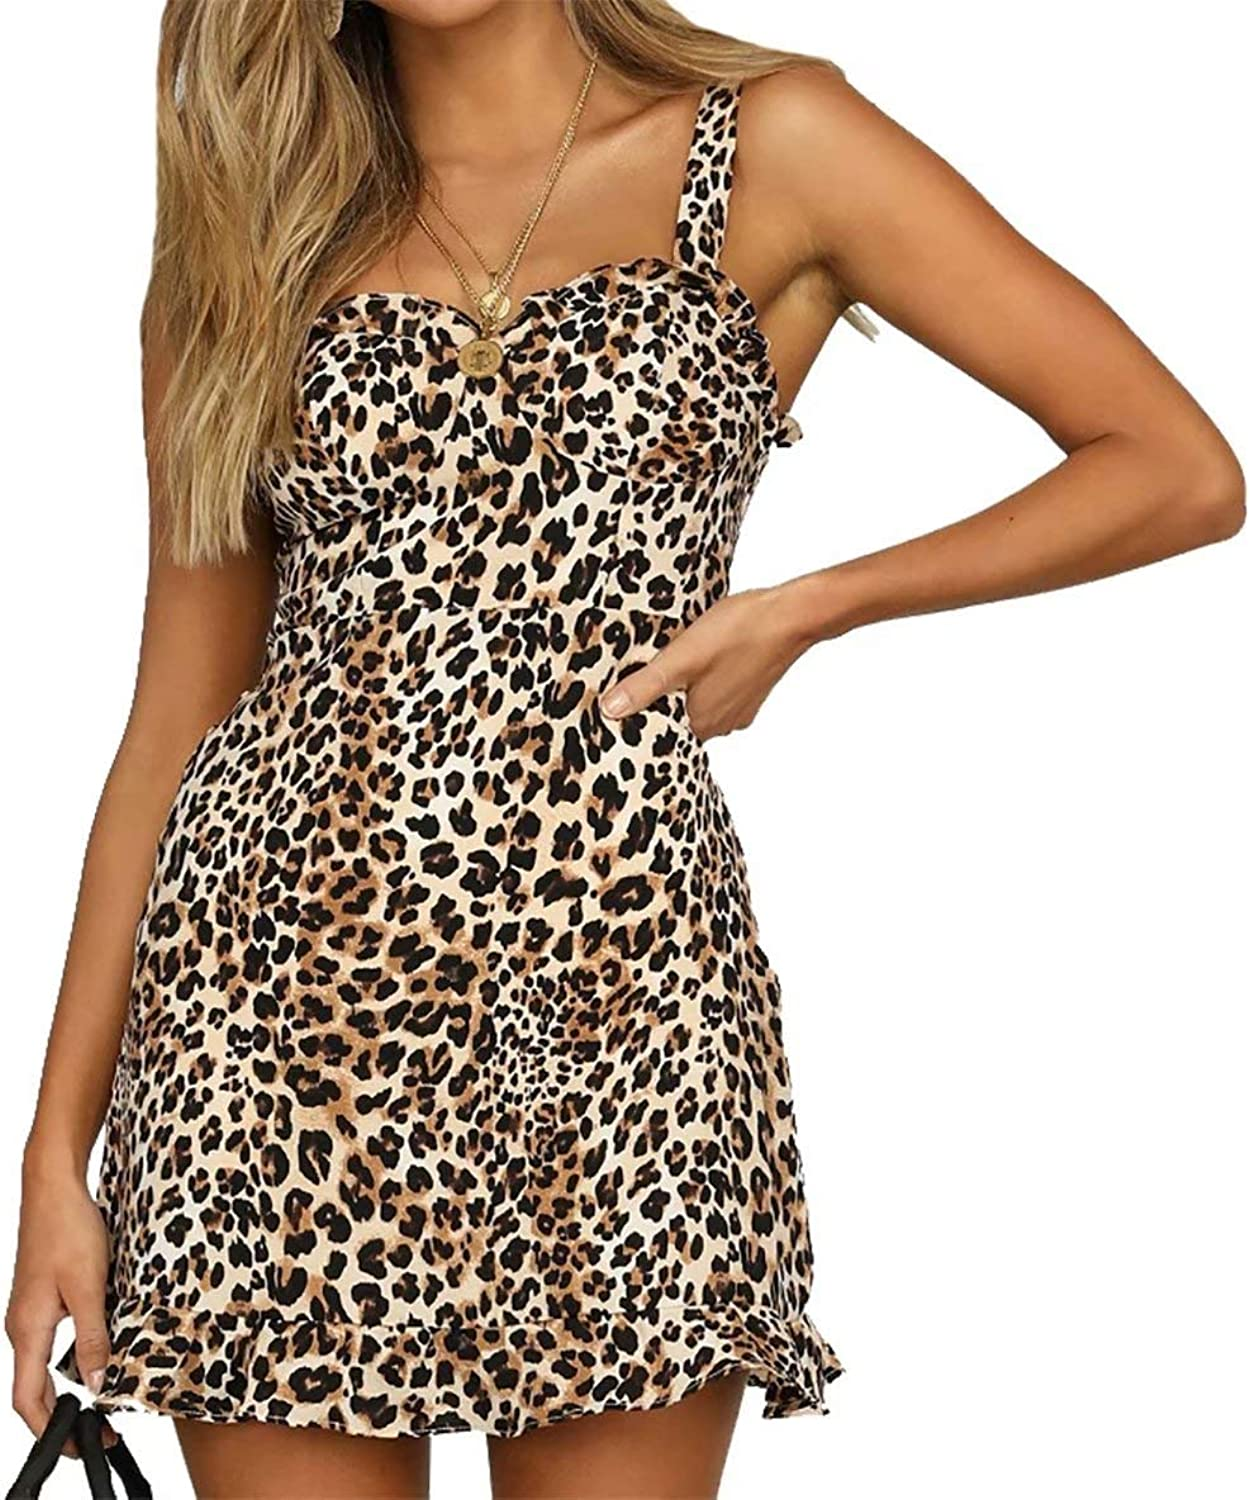 JINTING Women V Neck Spaghetti Strap Sleeveless Leopard Party Club Ruffle Mini Short Dress